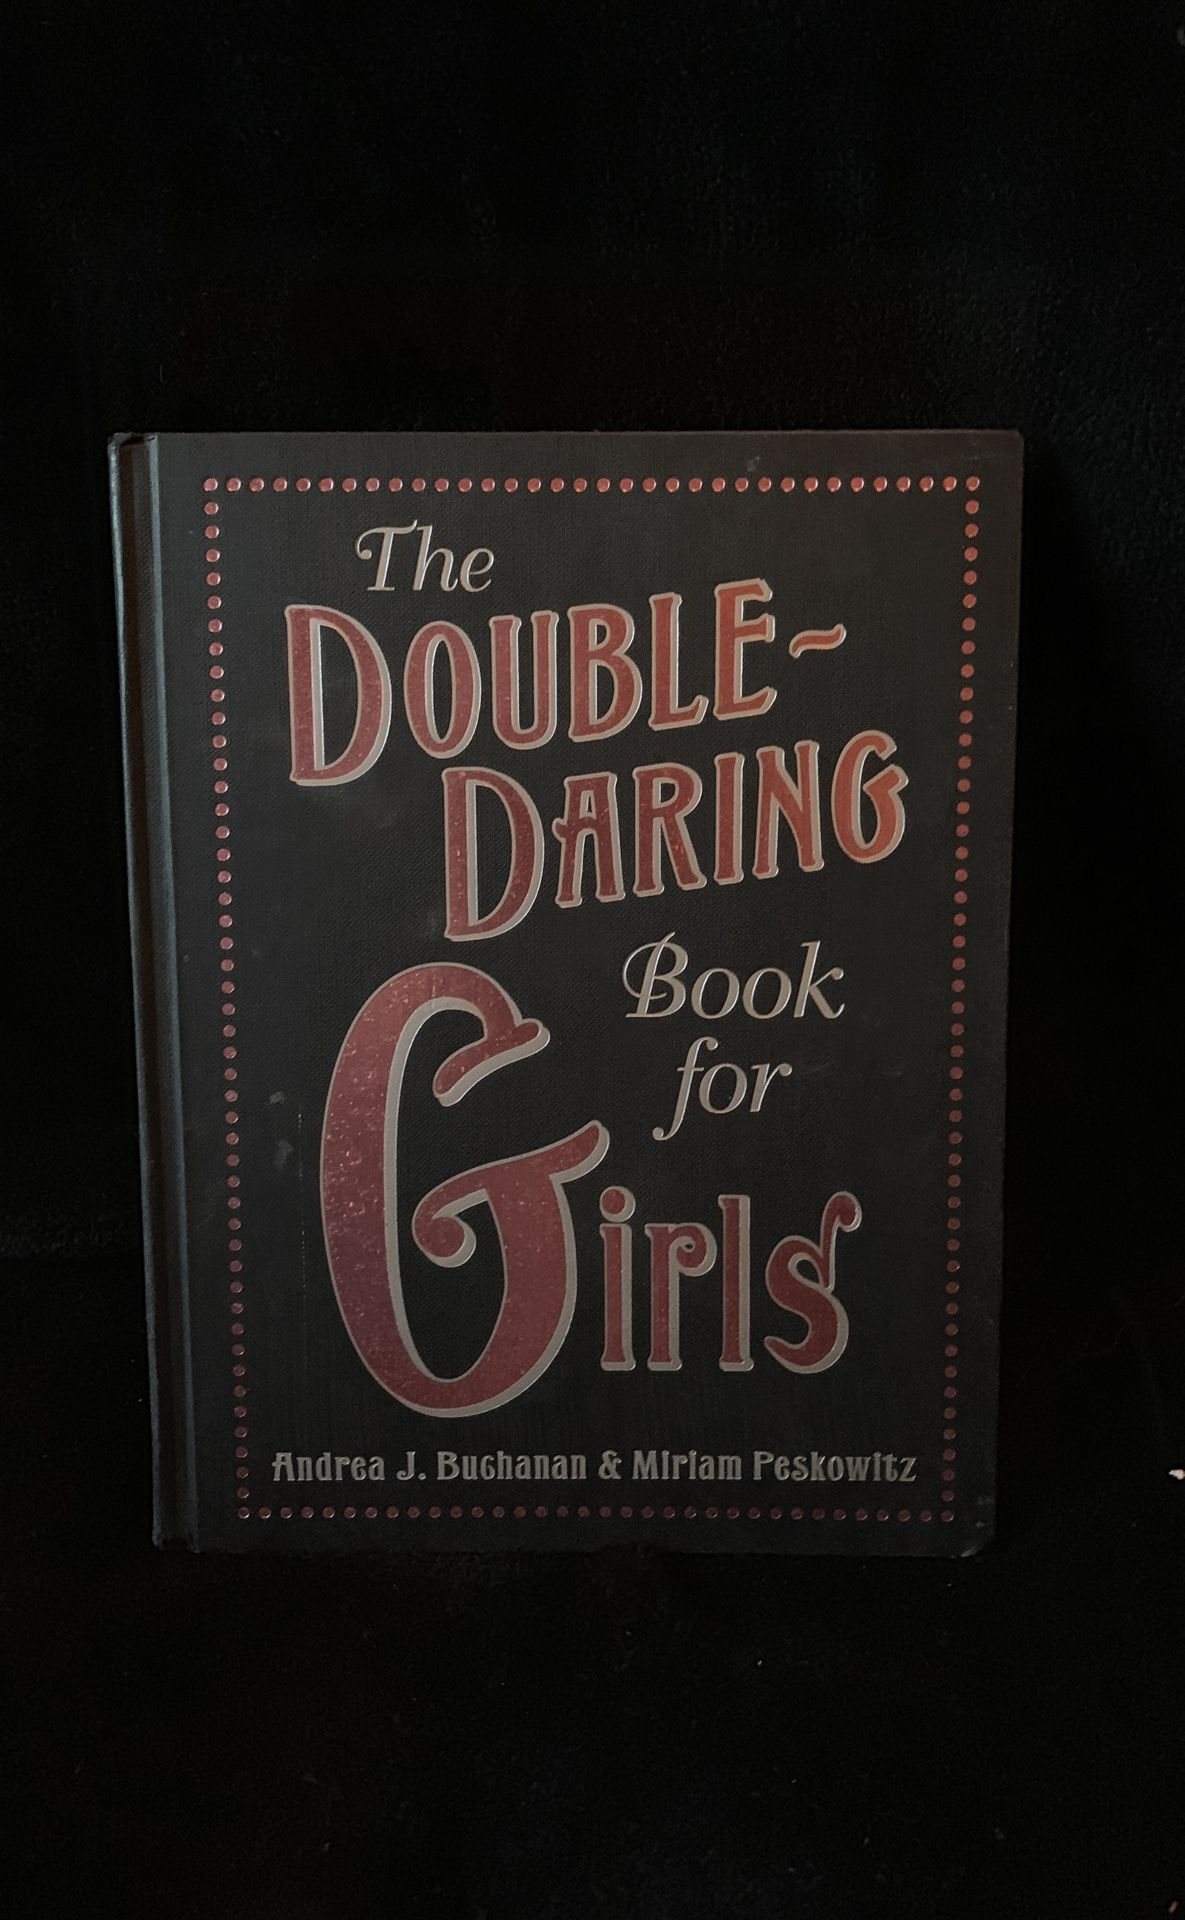 The Double- Daring Book for Girls